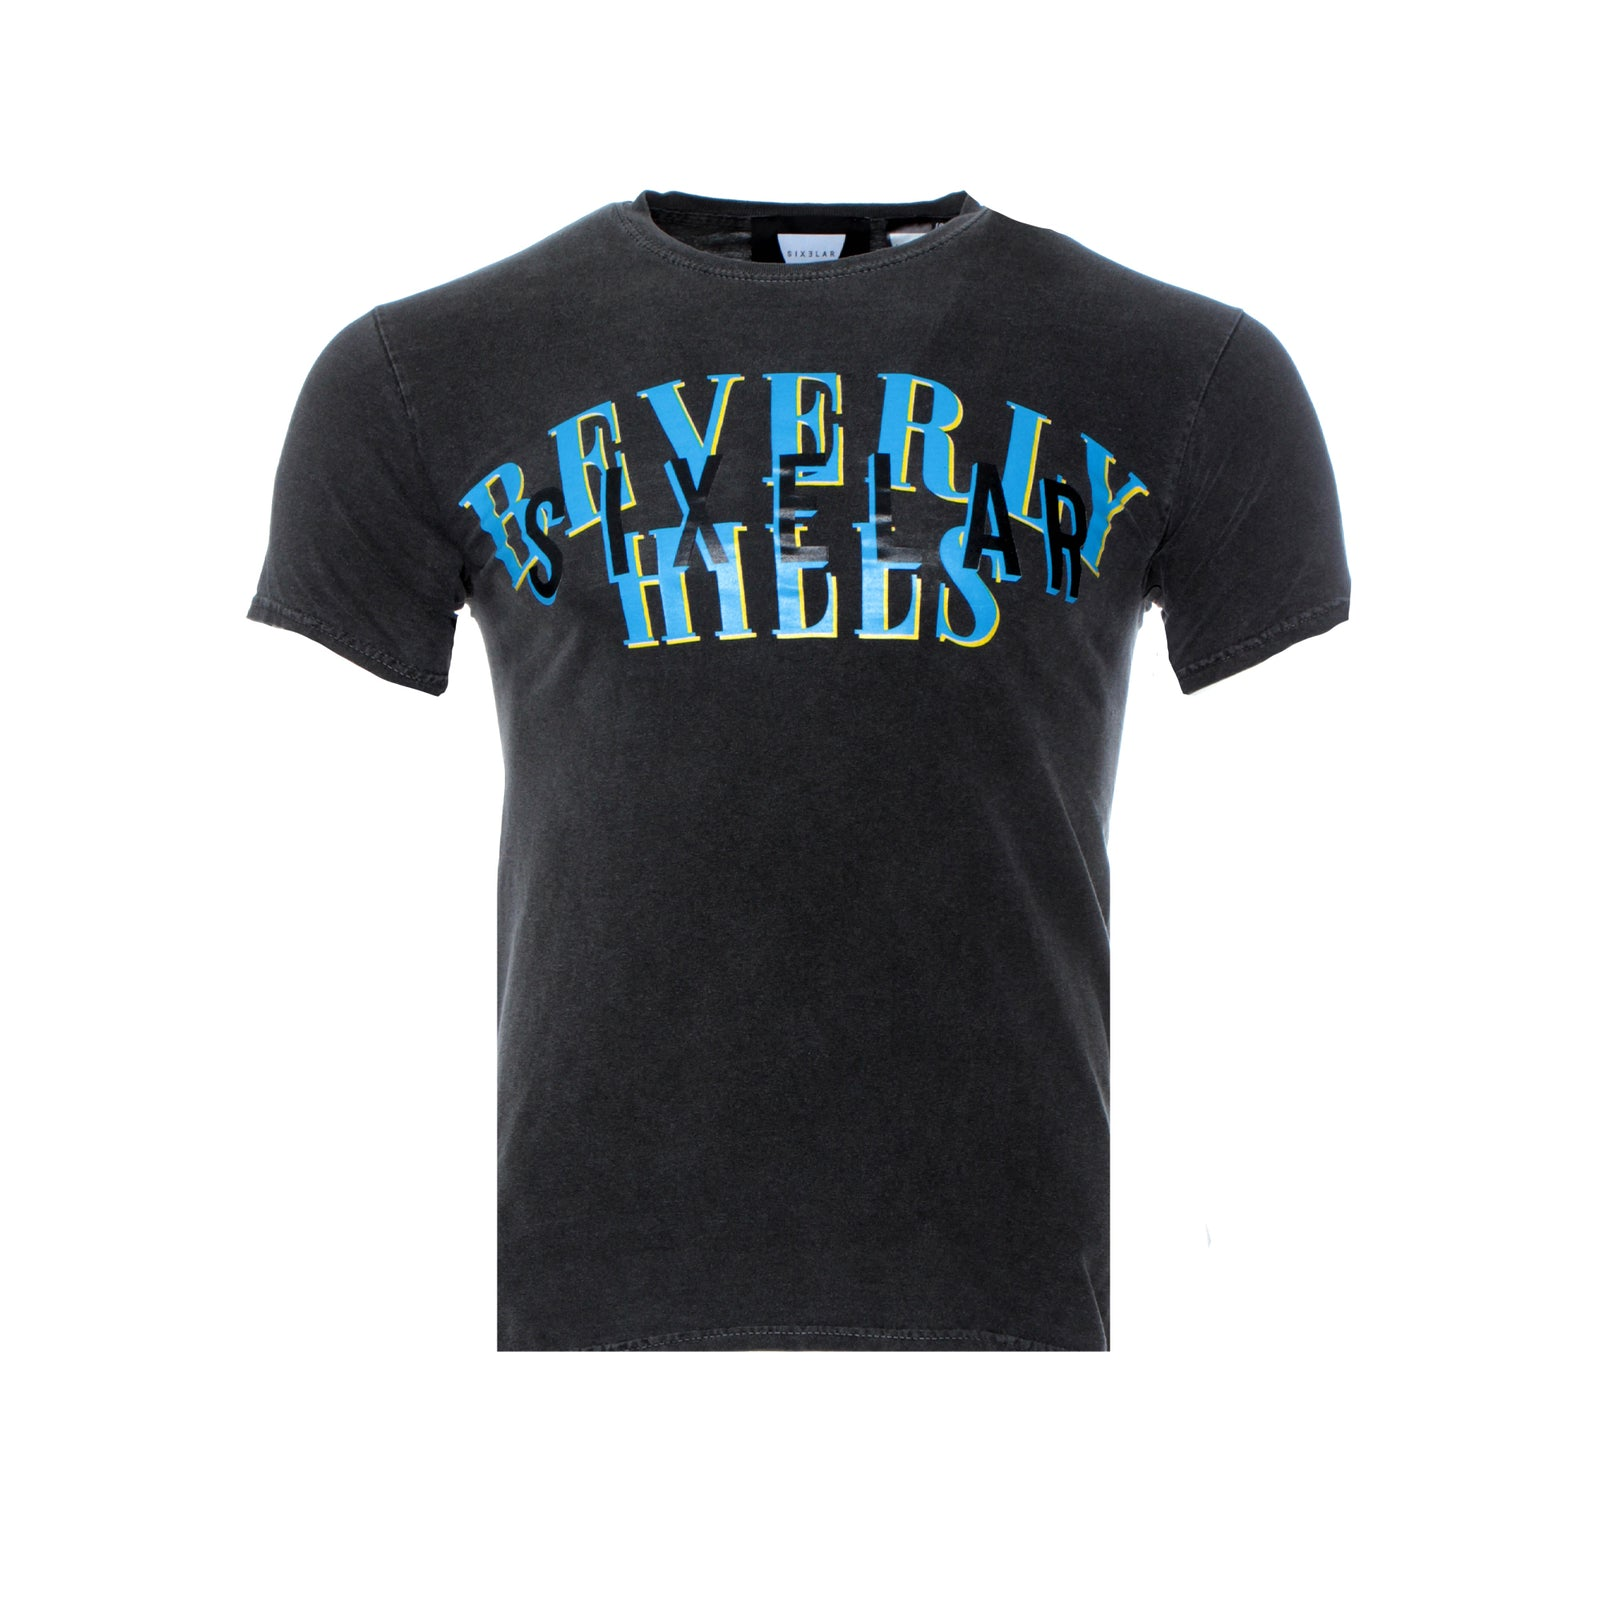 Sixelar Classic  Beverly Hills Men's Graphic Tee  Vintage Charcoal